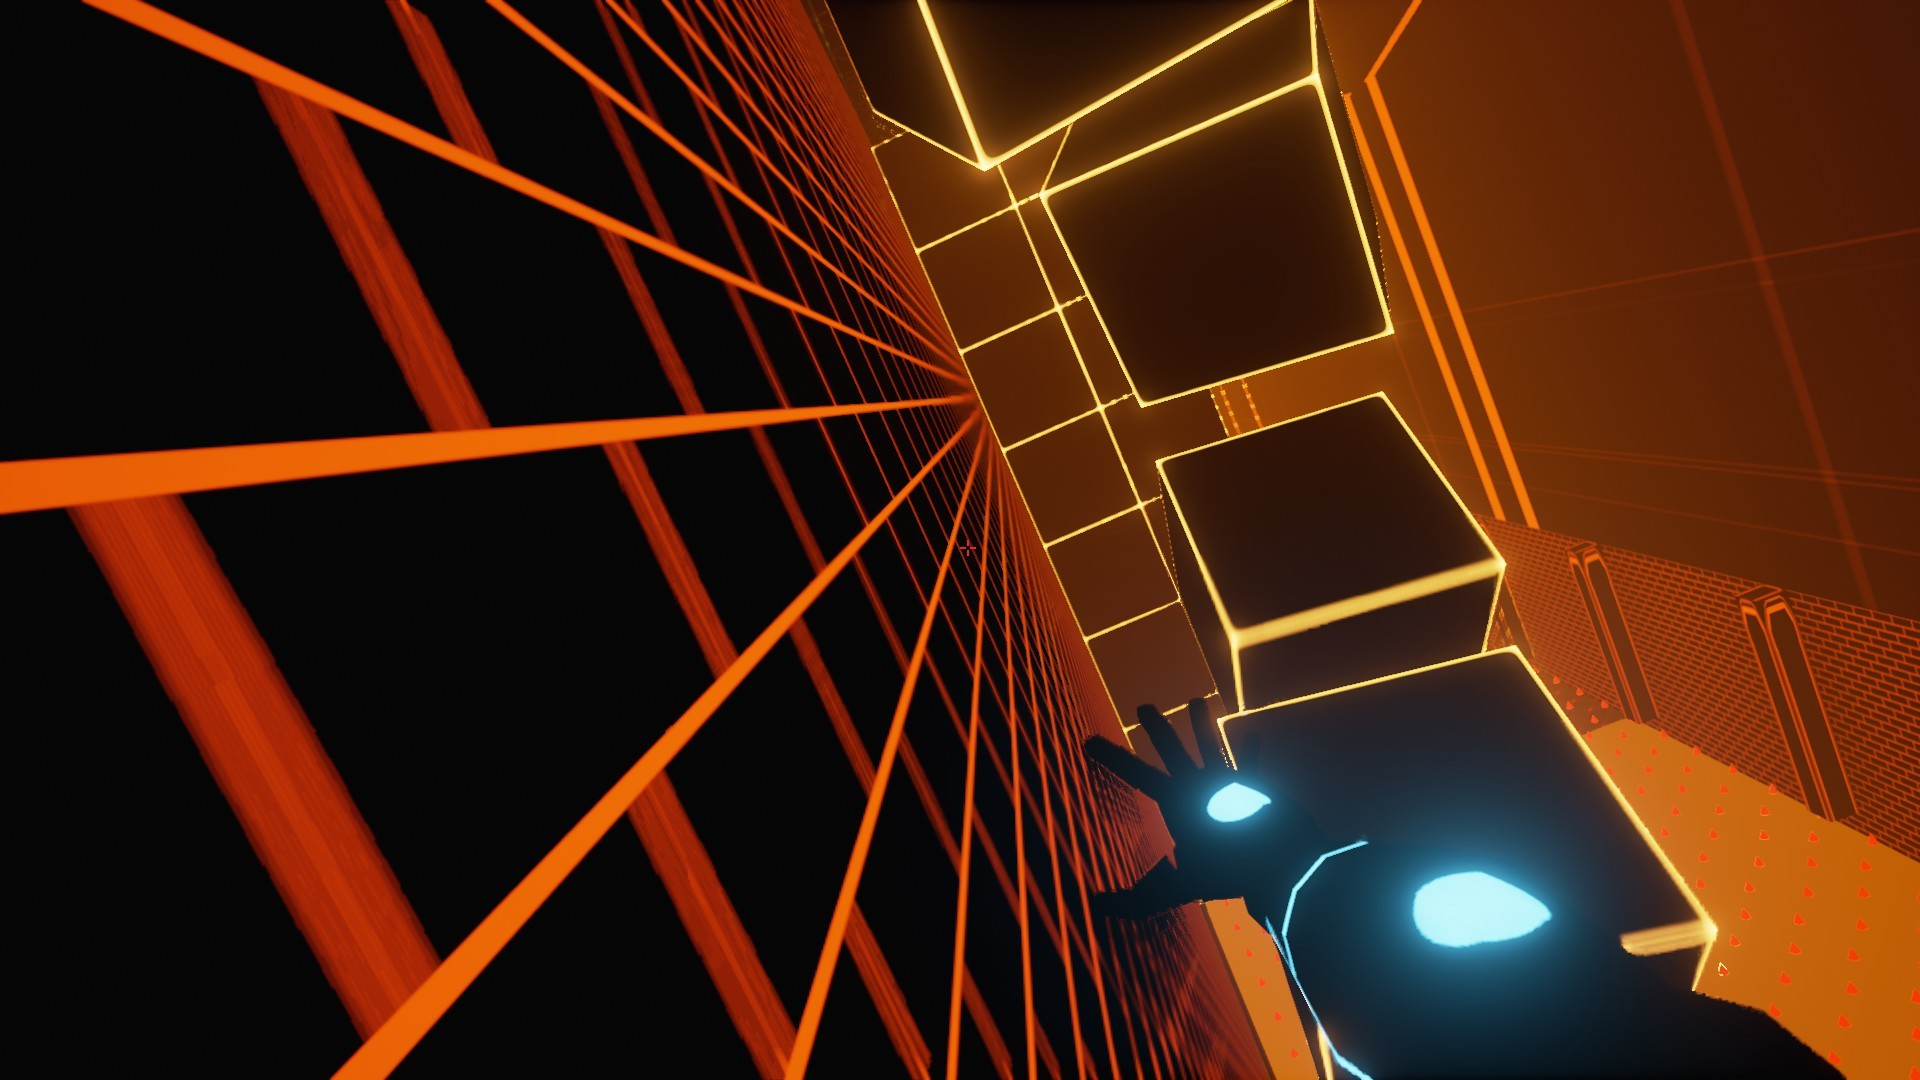 What's On Steam - Vectromirror 0™